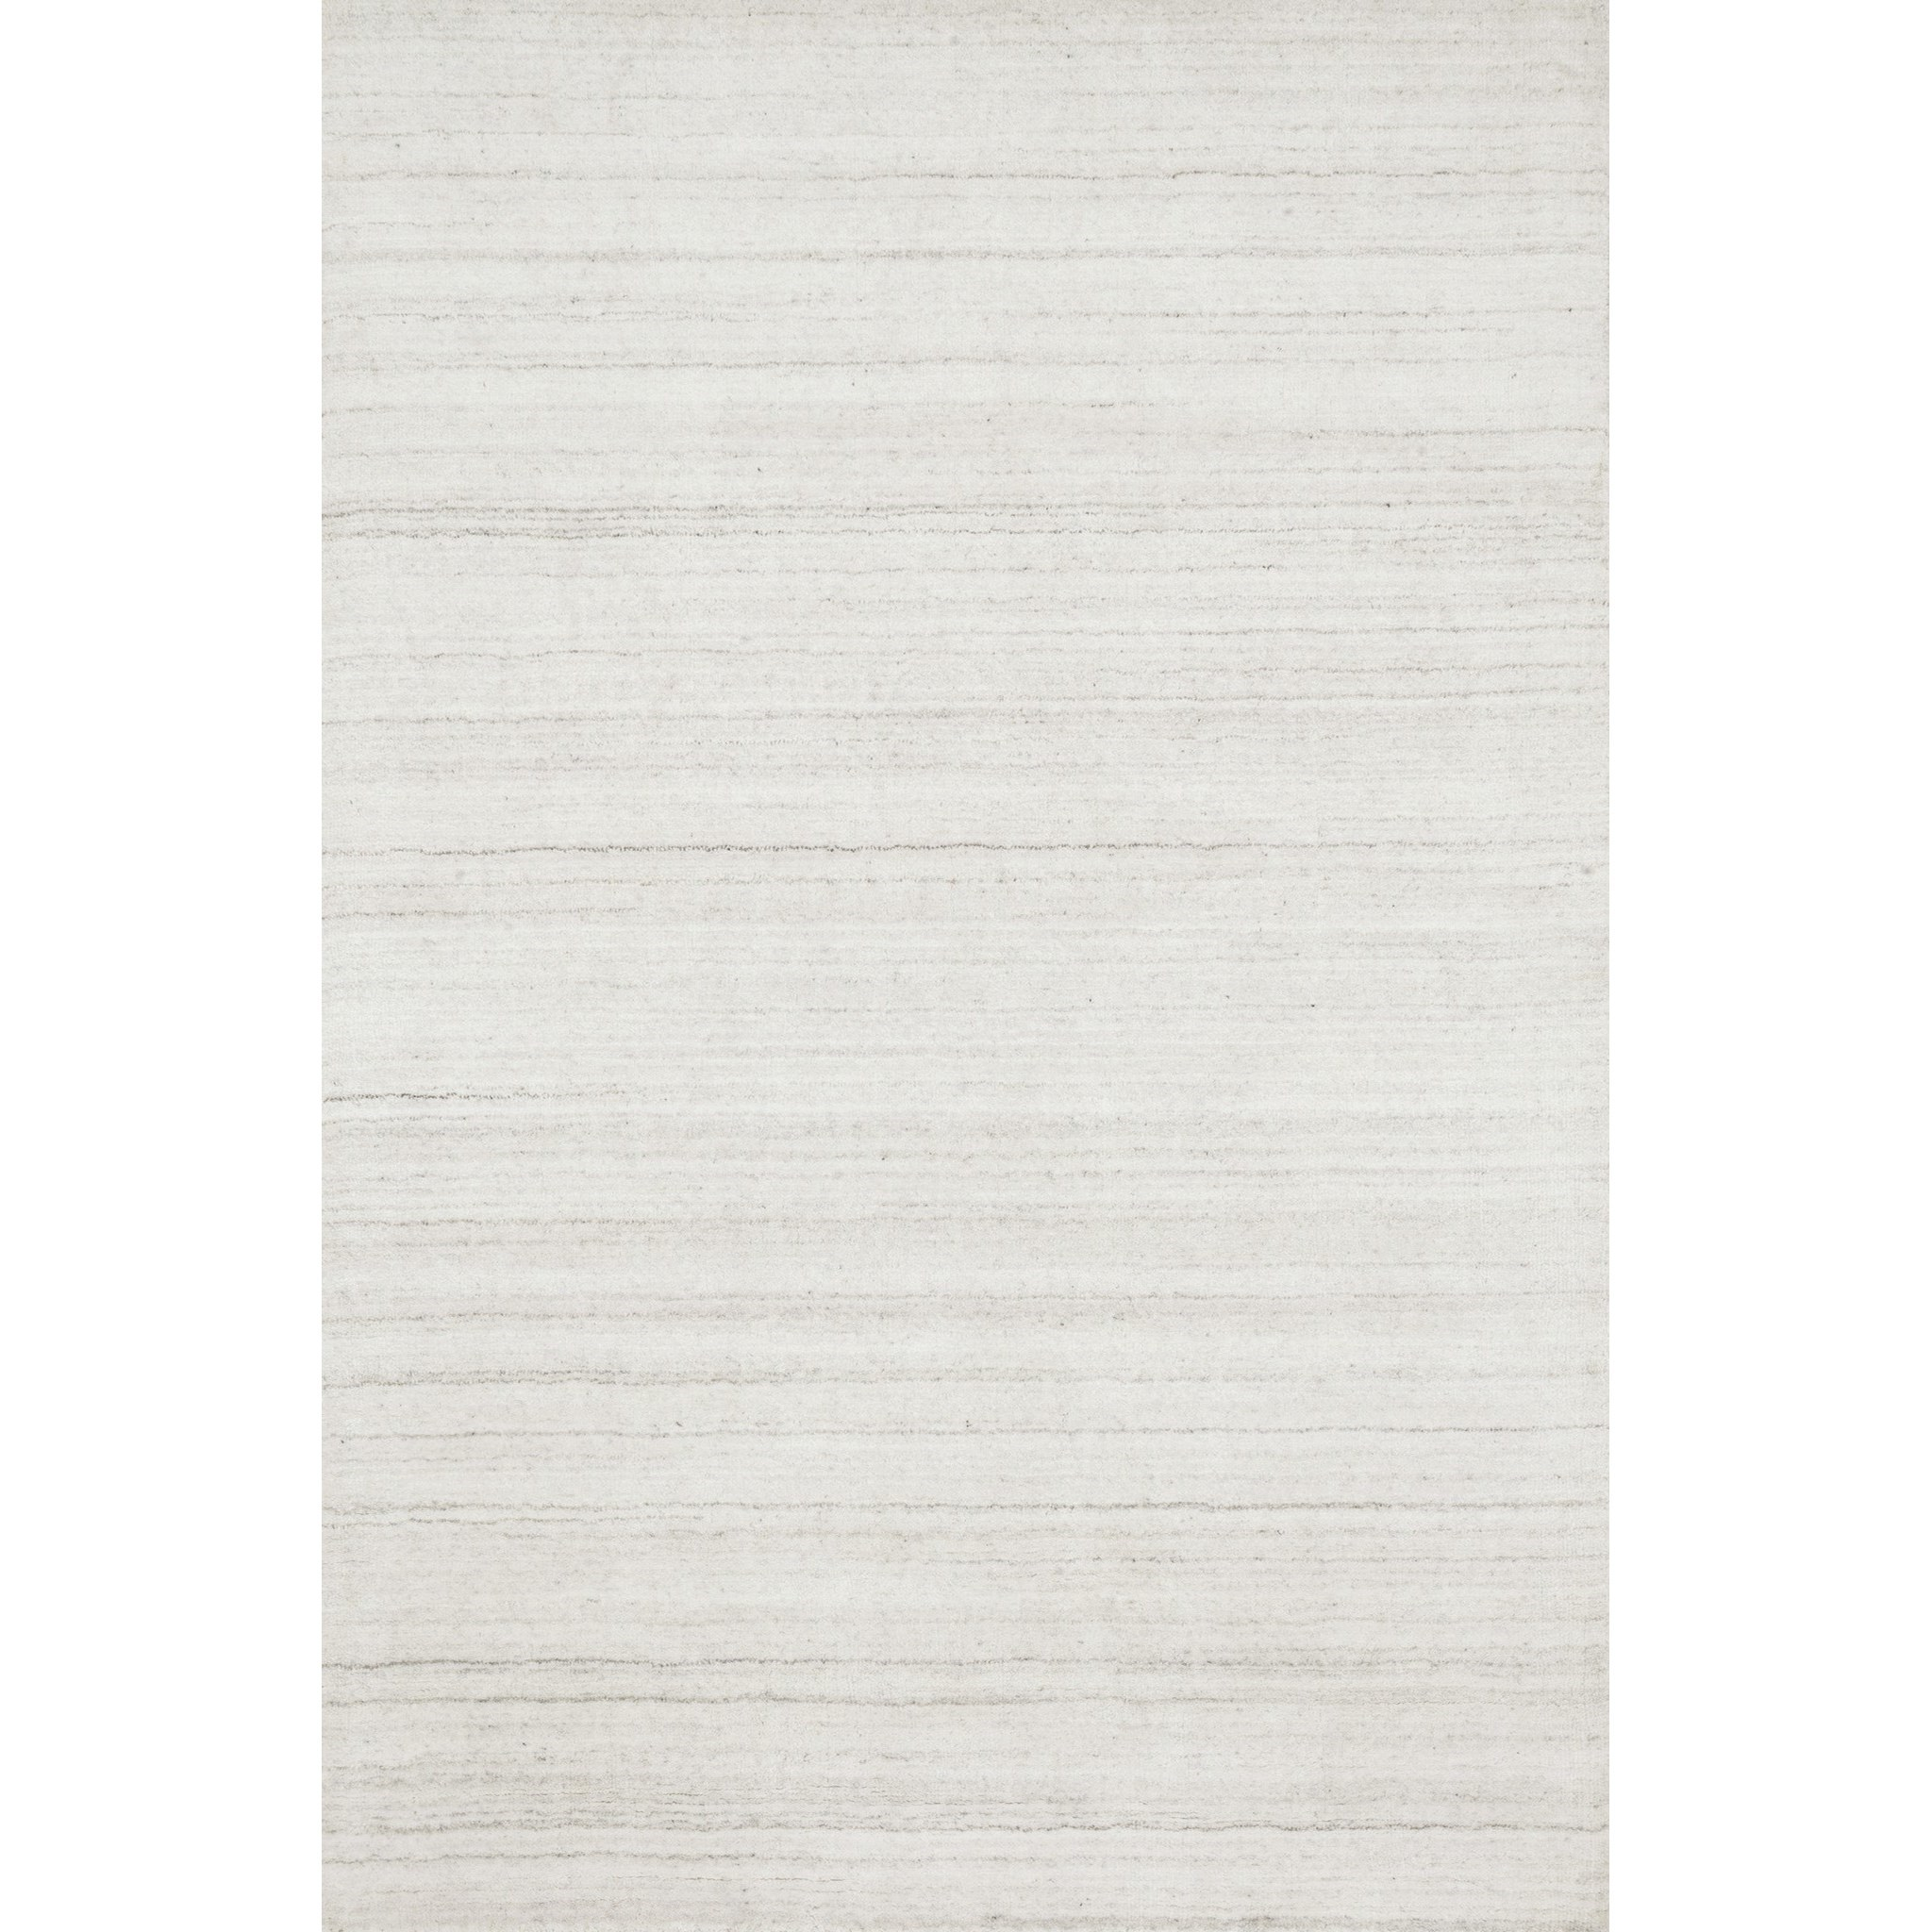 "Barkley 9'-3"" X 13' Area Rug by Loloi Rugs at Belfort Furniture"